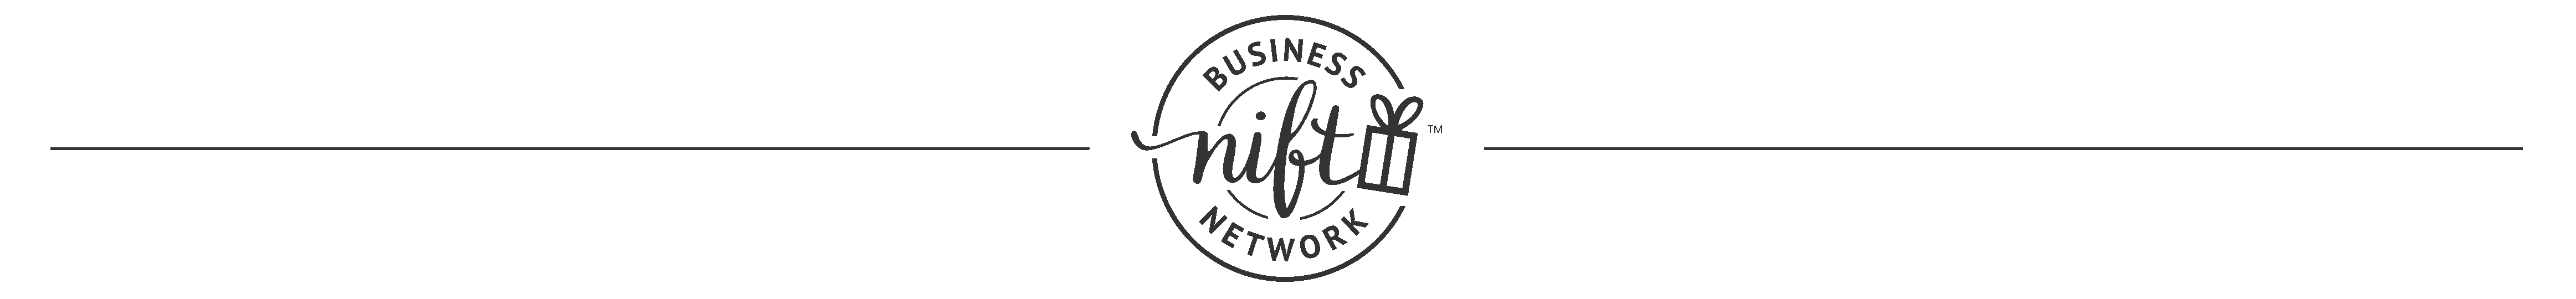 Business logo desktop